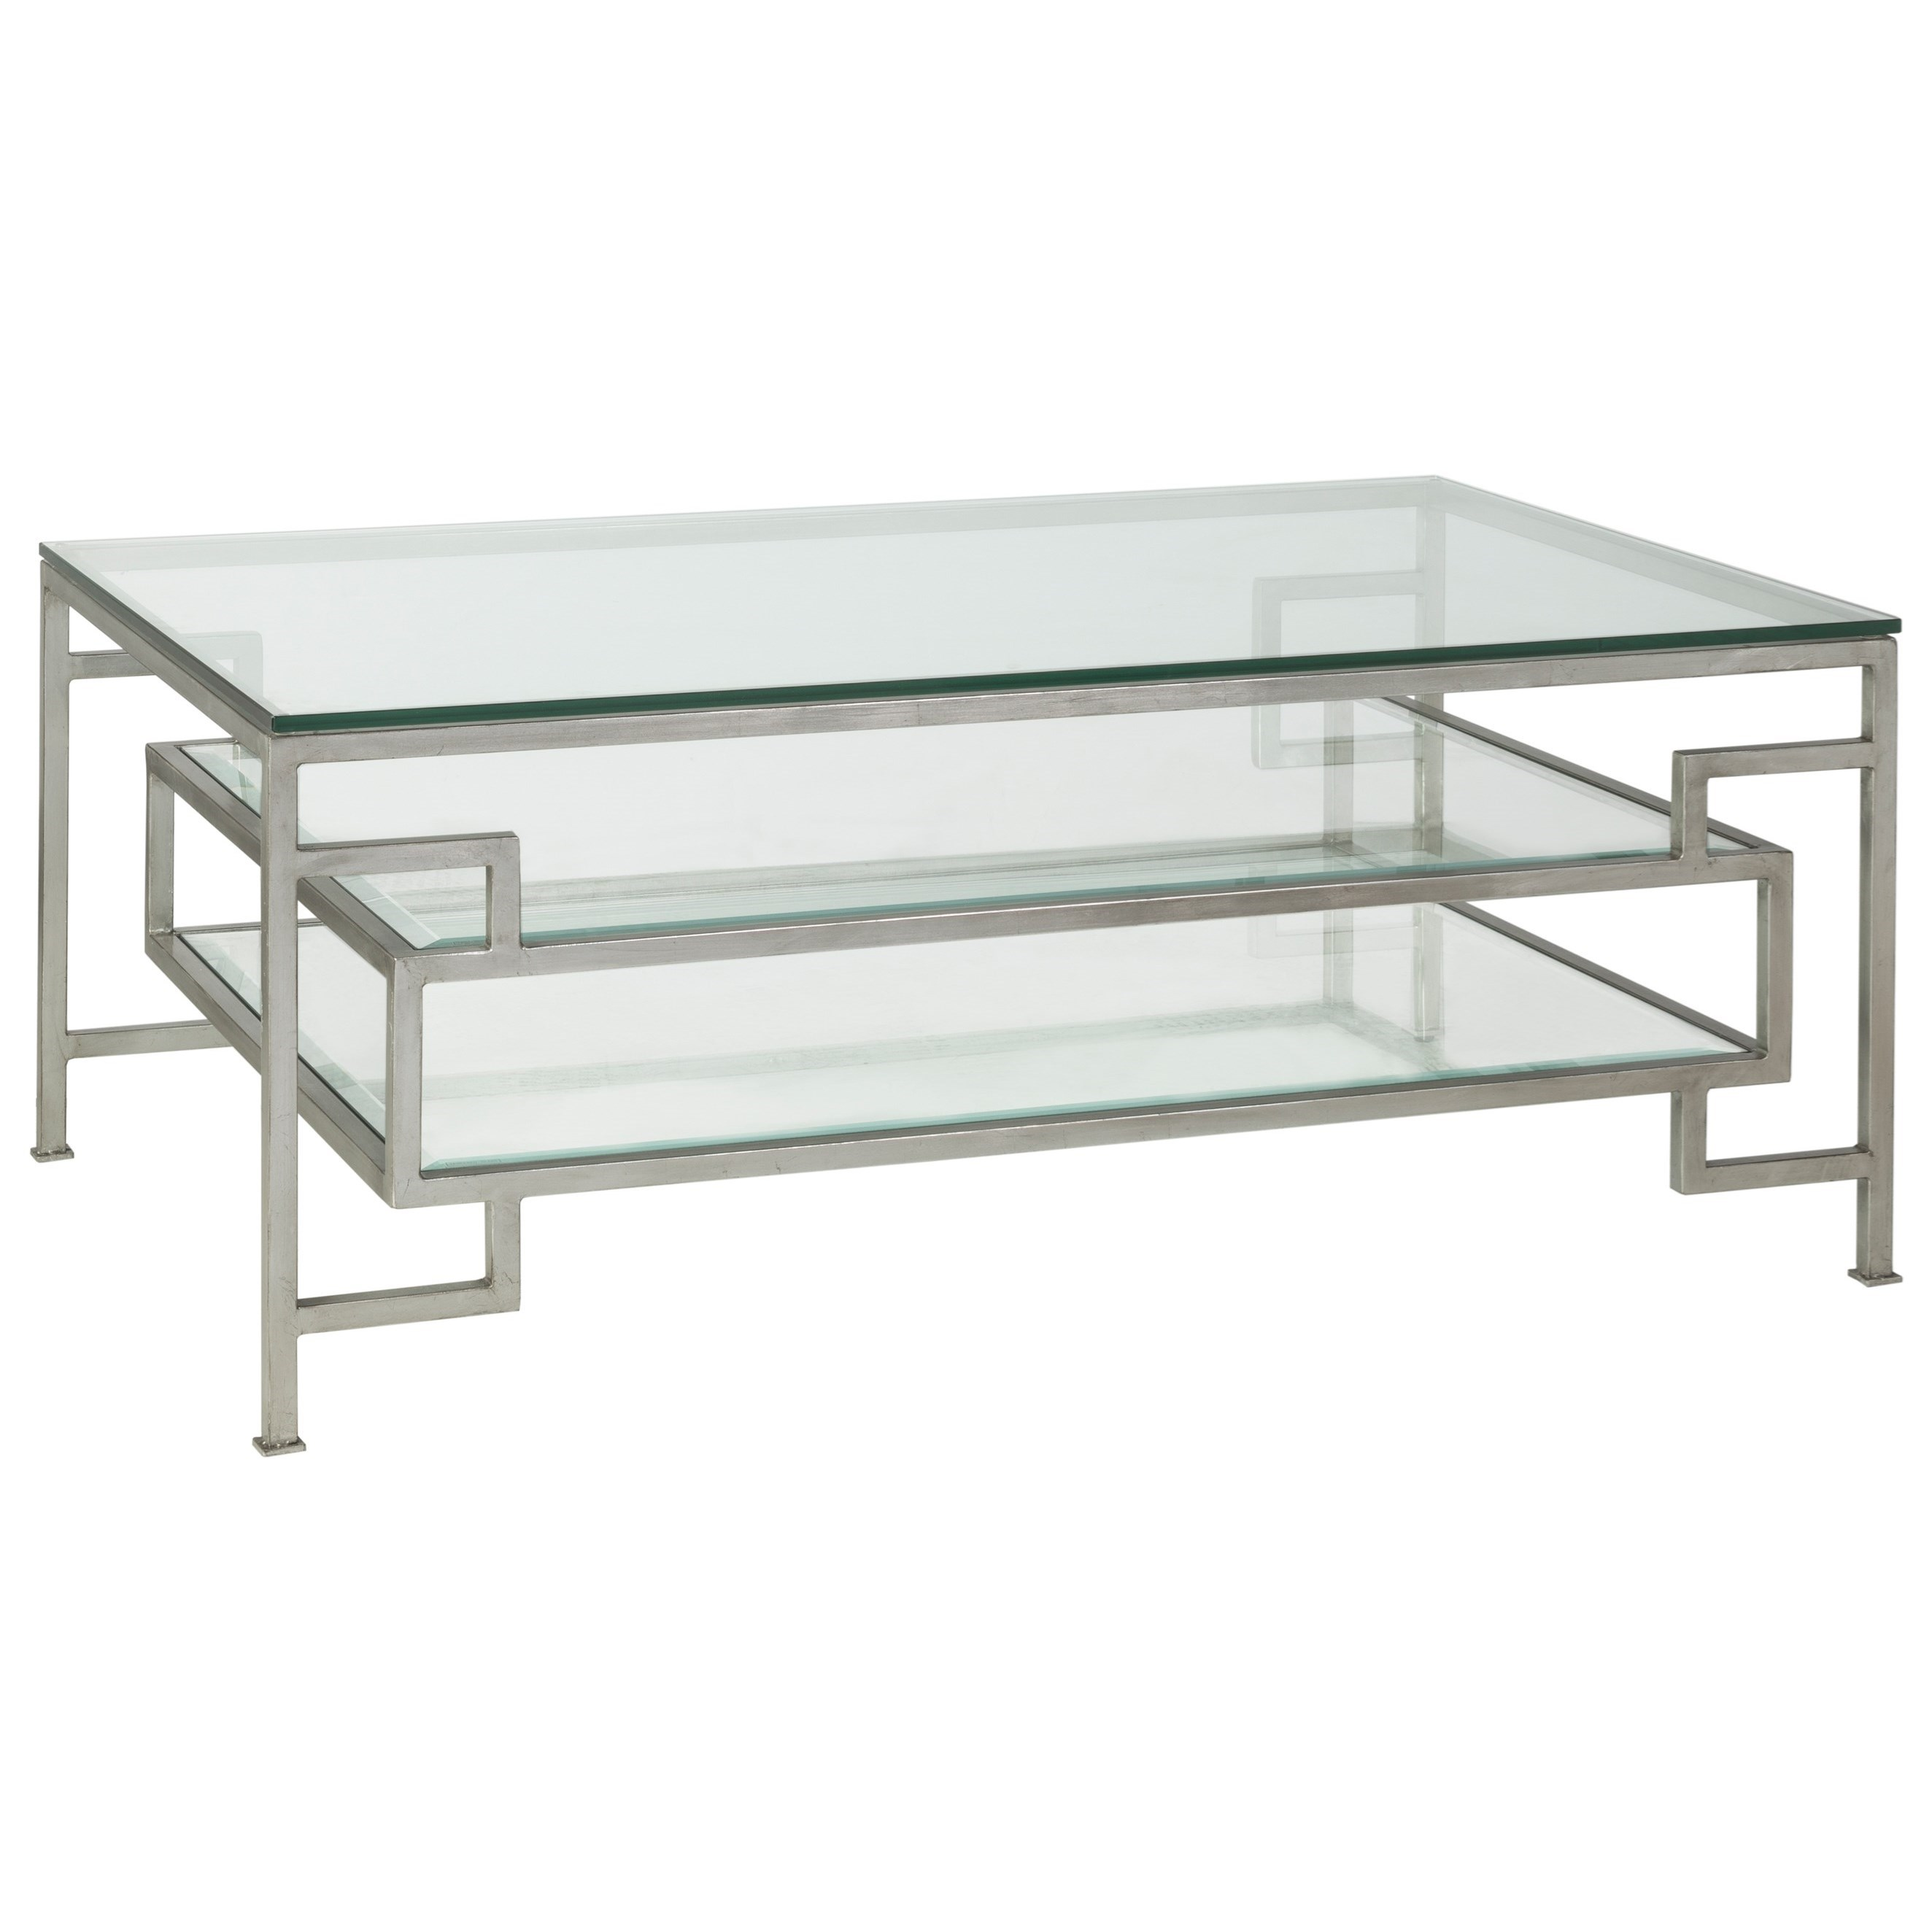 Metal Designs Suspension Rectangular Cocktail Table by Artistica at Baer's Furniture